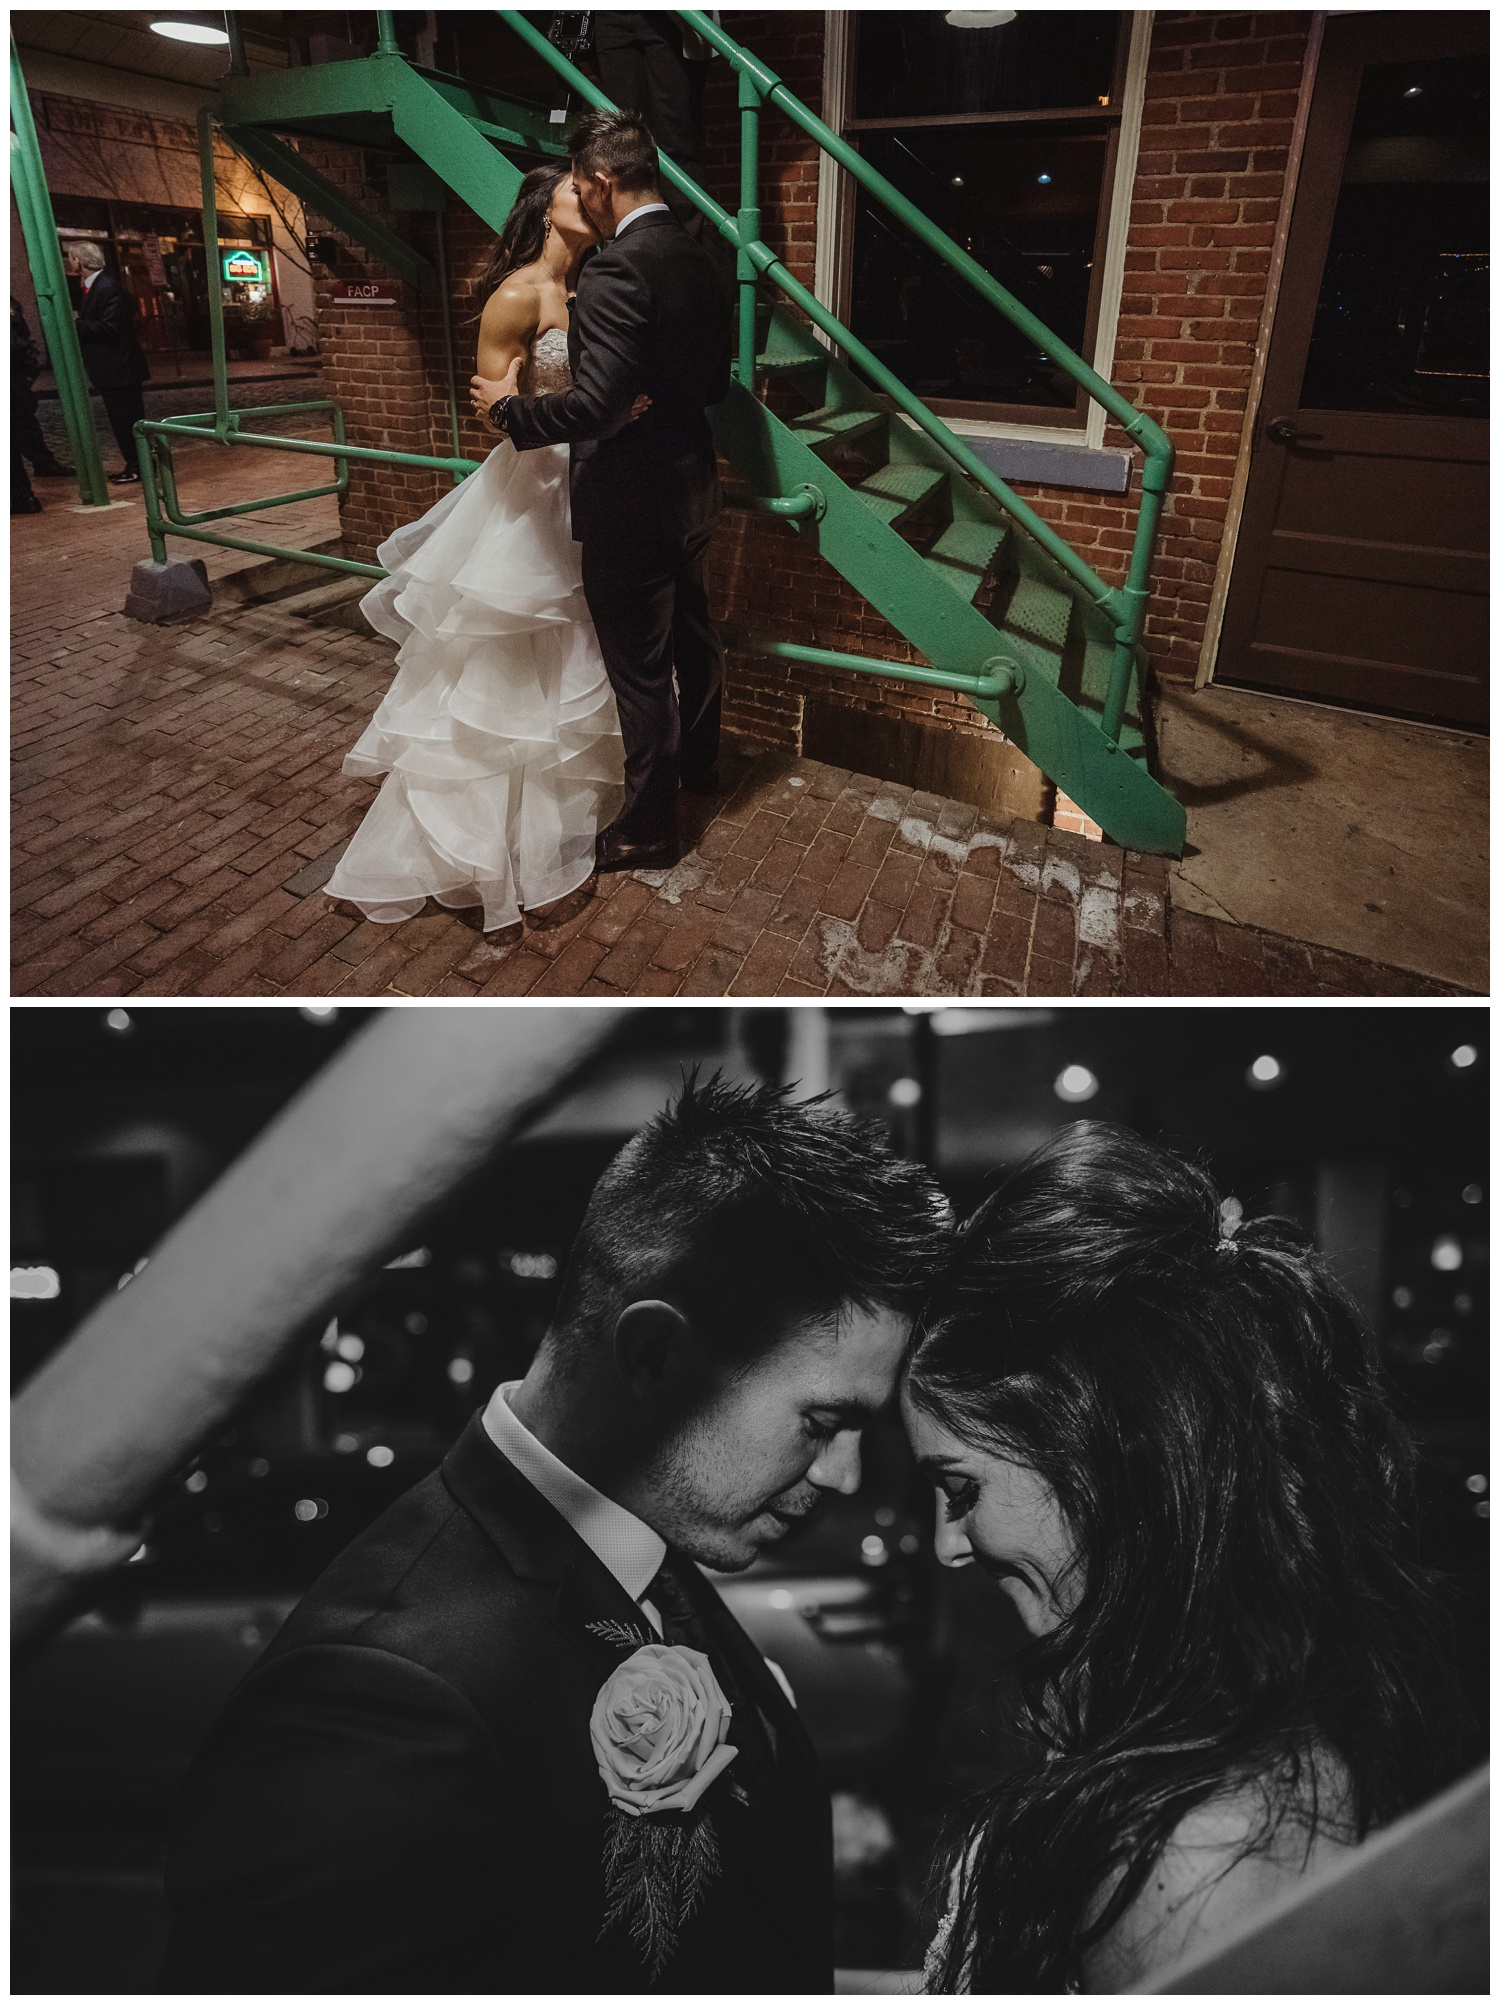 The bride and groom took bridal pictures at Market Hall after their wedding ceremony at All Saints Chapel in Raleigh, North Carolina, pictures by Rose Trail Images.